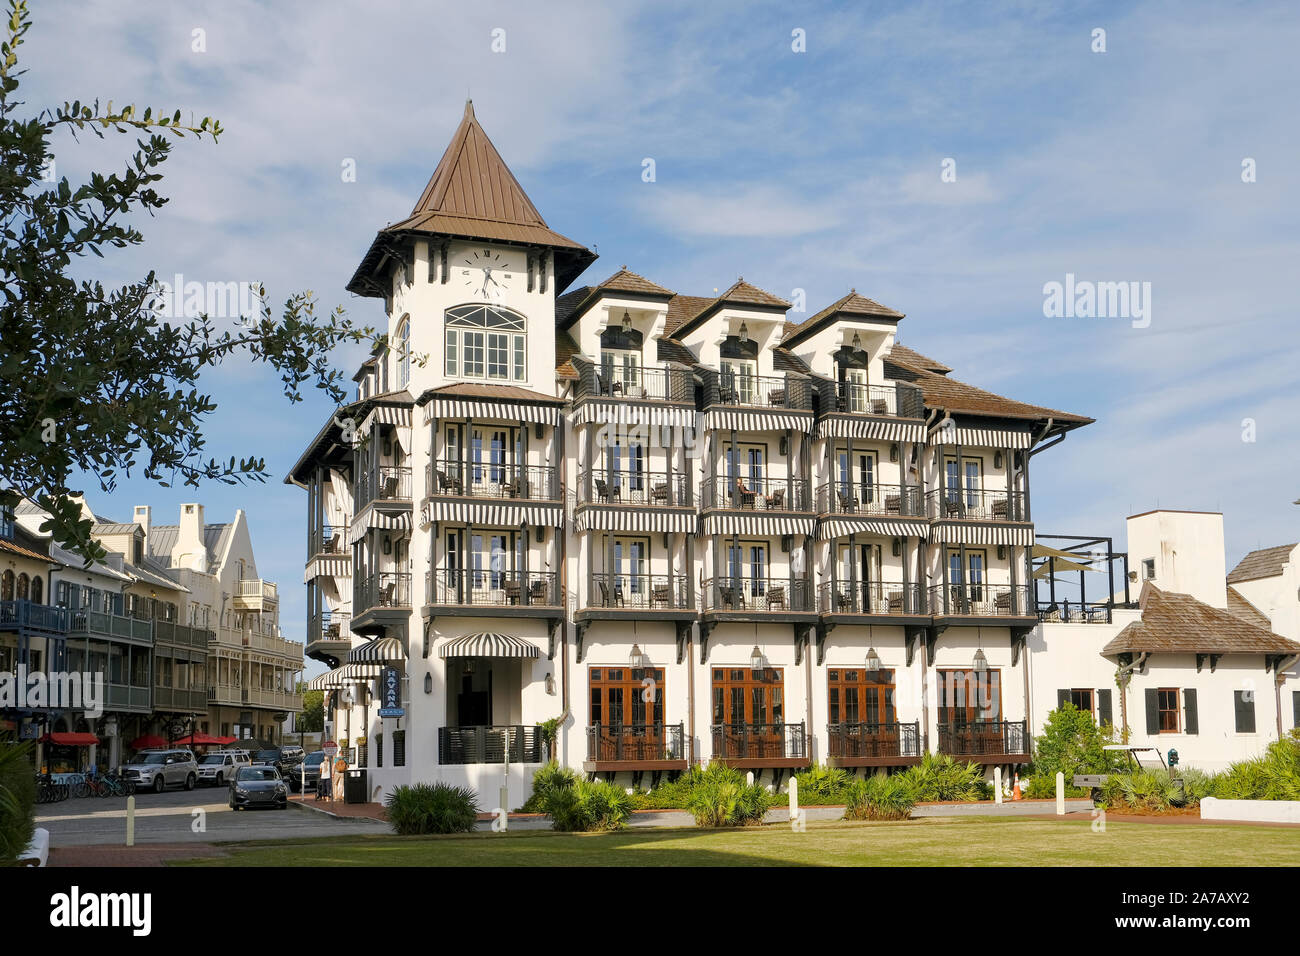 The Pearl Hotel exterior on the Gulf of Mexico, a beach side hotel in the Florida panhandle, Rosemary Beach, Florida USA. Stock Photo